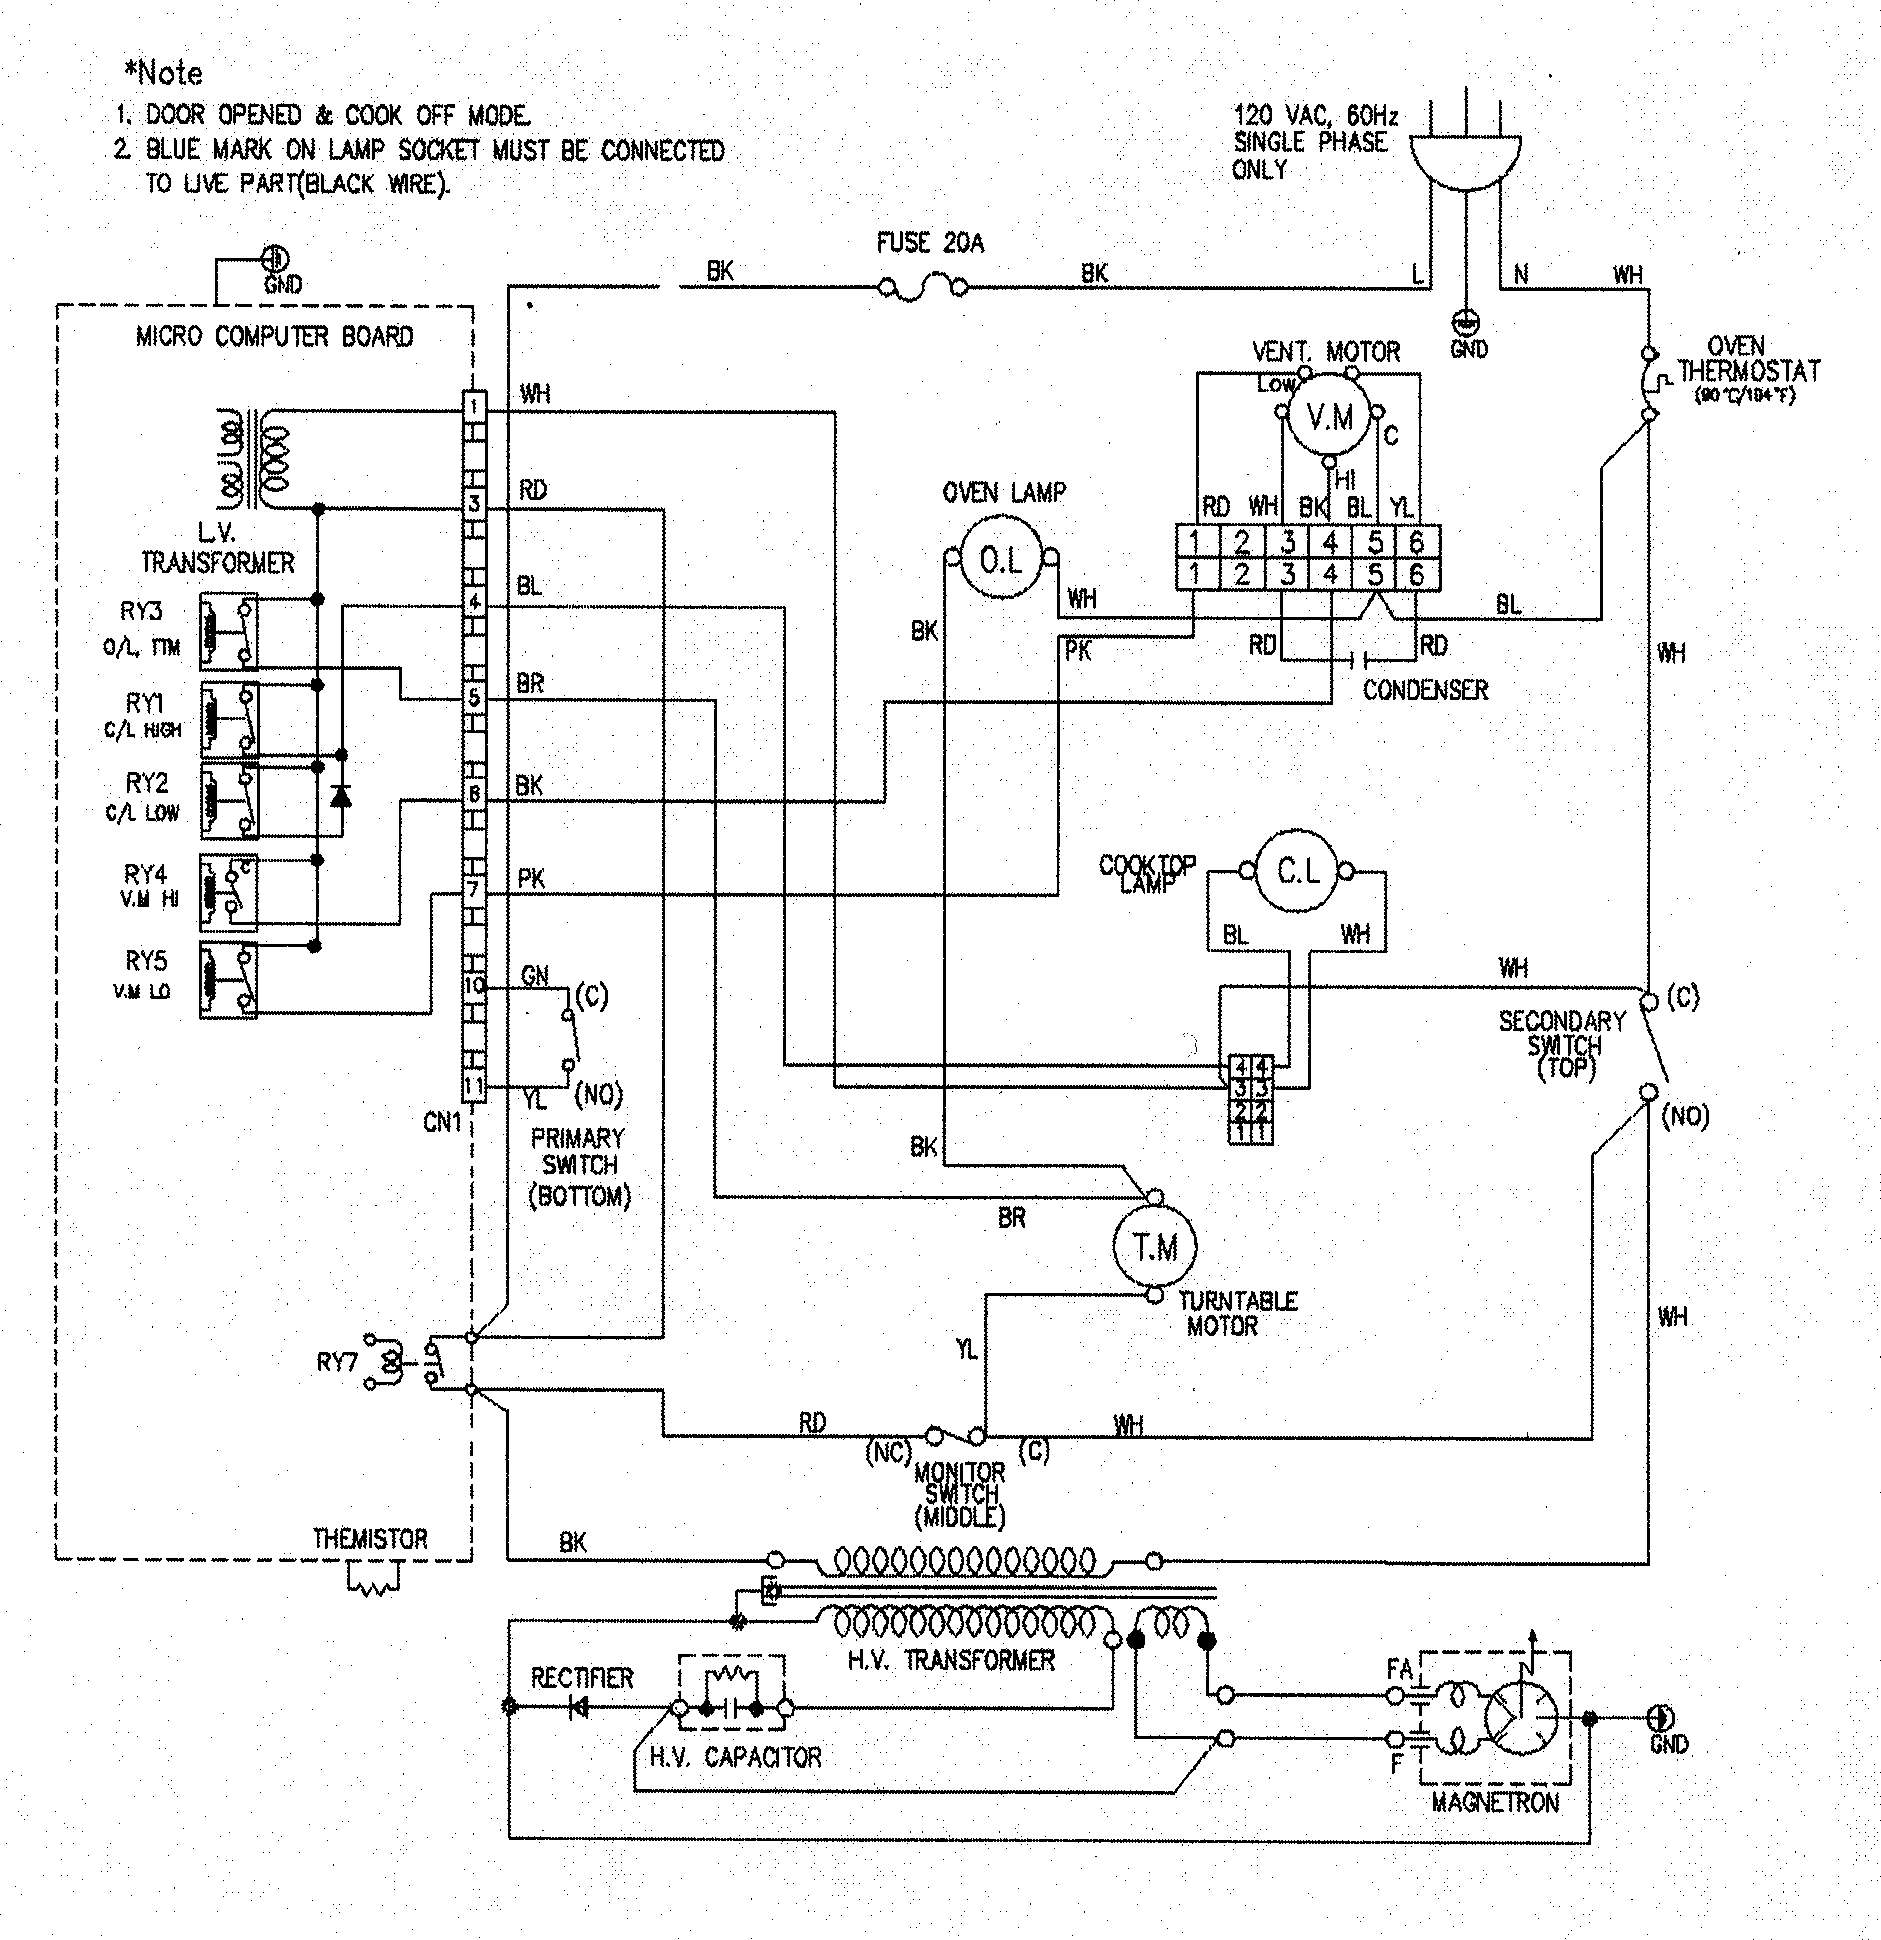 microwave oven wiring diagram wiring diagram show for lg microwave oven wiring diagram [ 1881 x 1940 Pixel ]